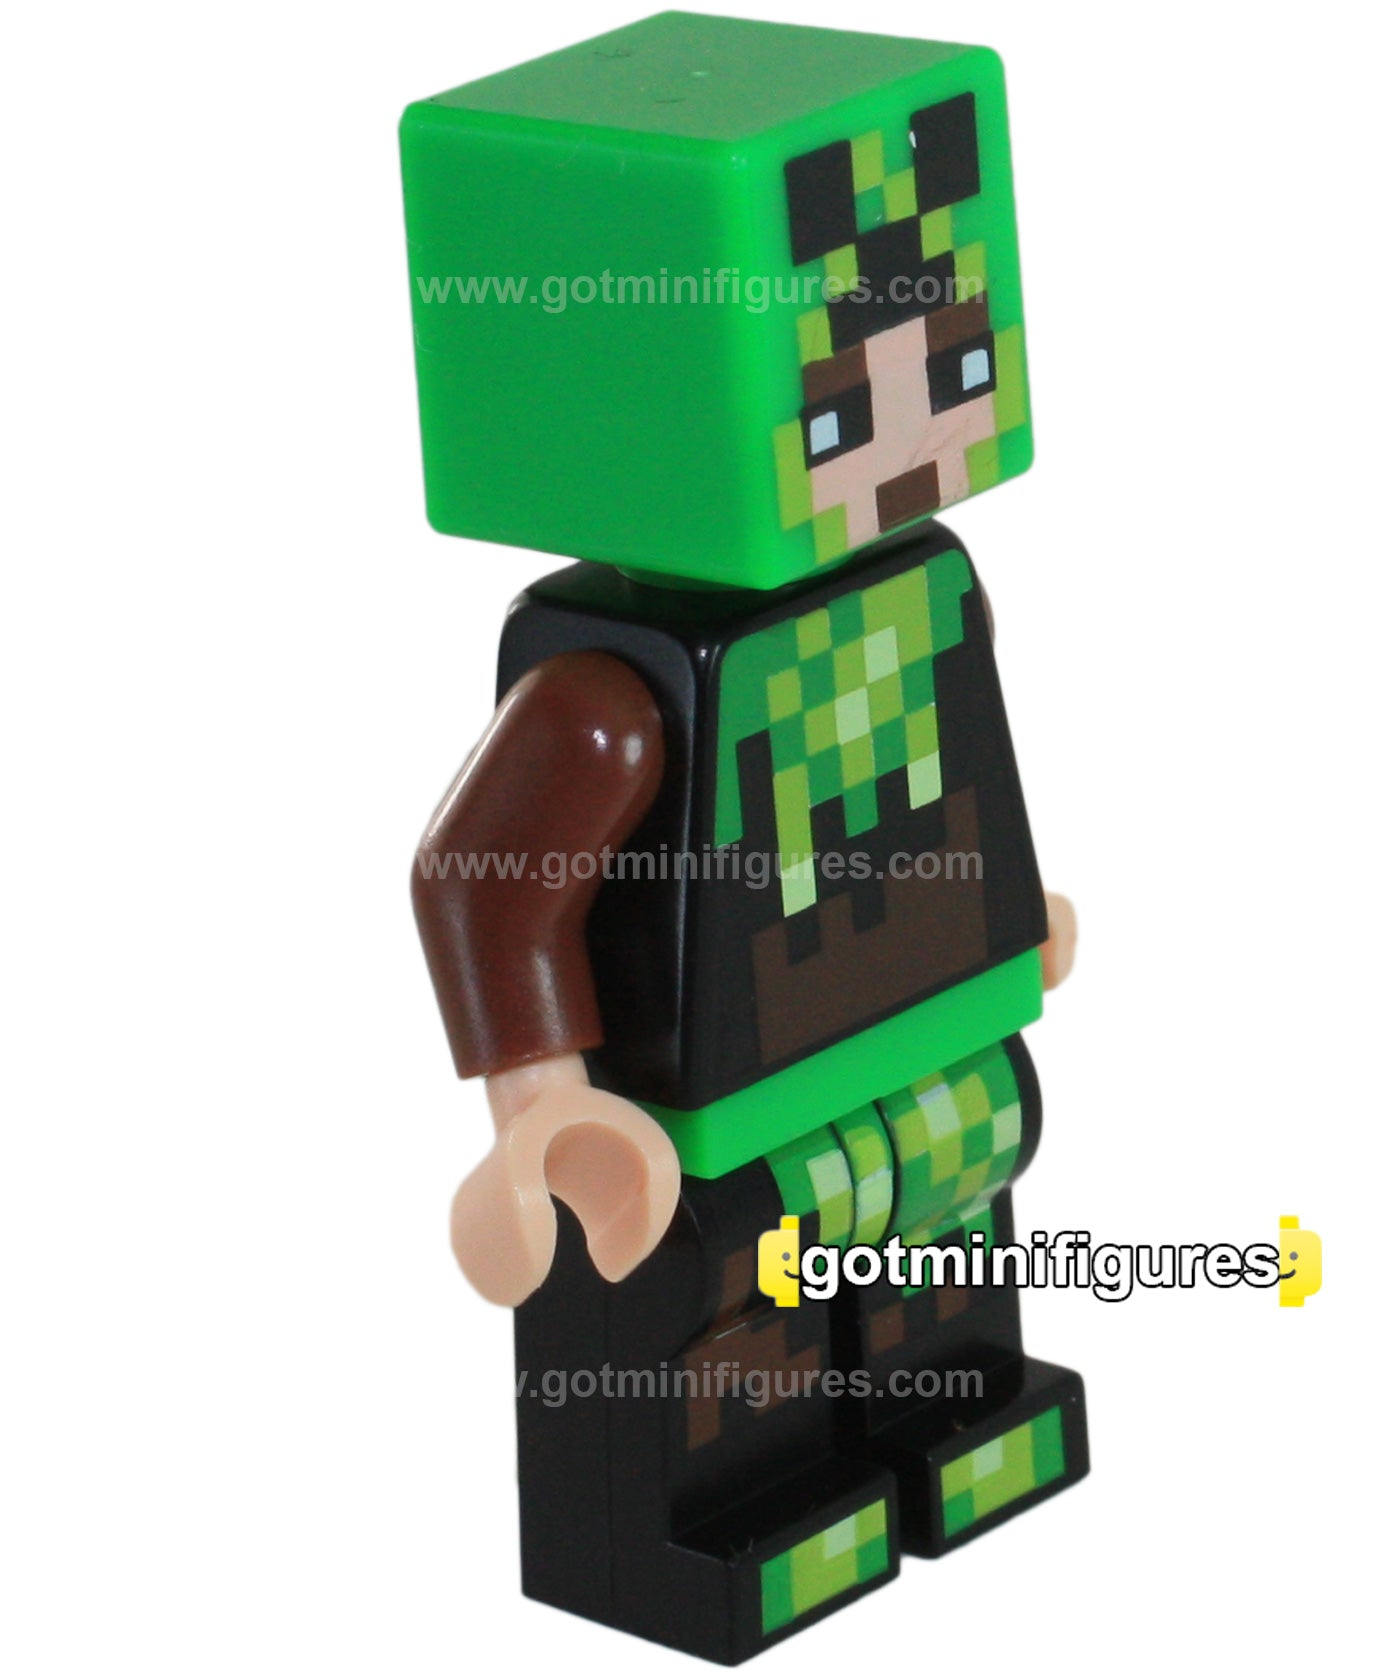 LEGO MINECRAFT - SKIN 06 Pixelated creeper costume #853609  sc 1 st  gotminifigures & LEGO MINECRAFT - SKIN 06 Pixelated creeper costume #853609 ...